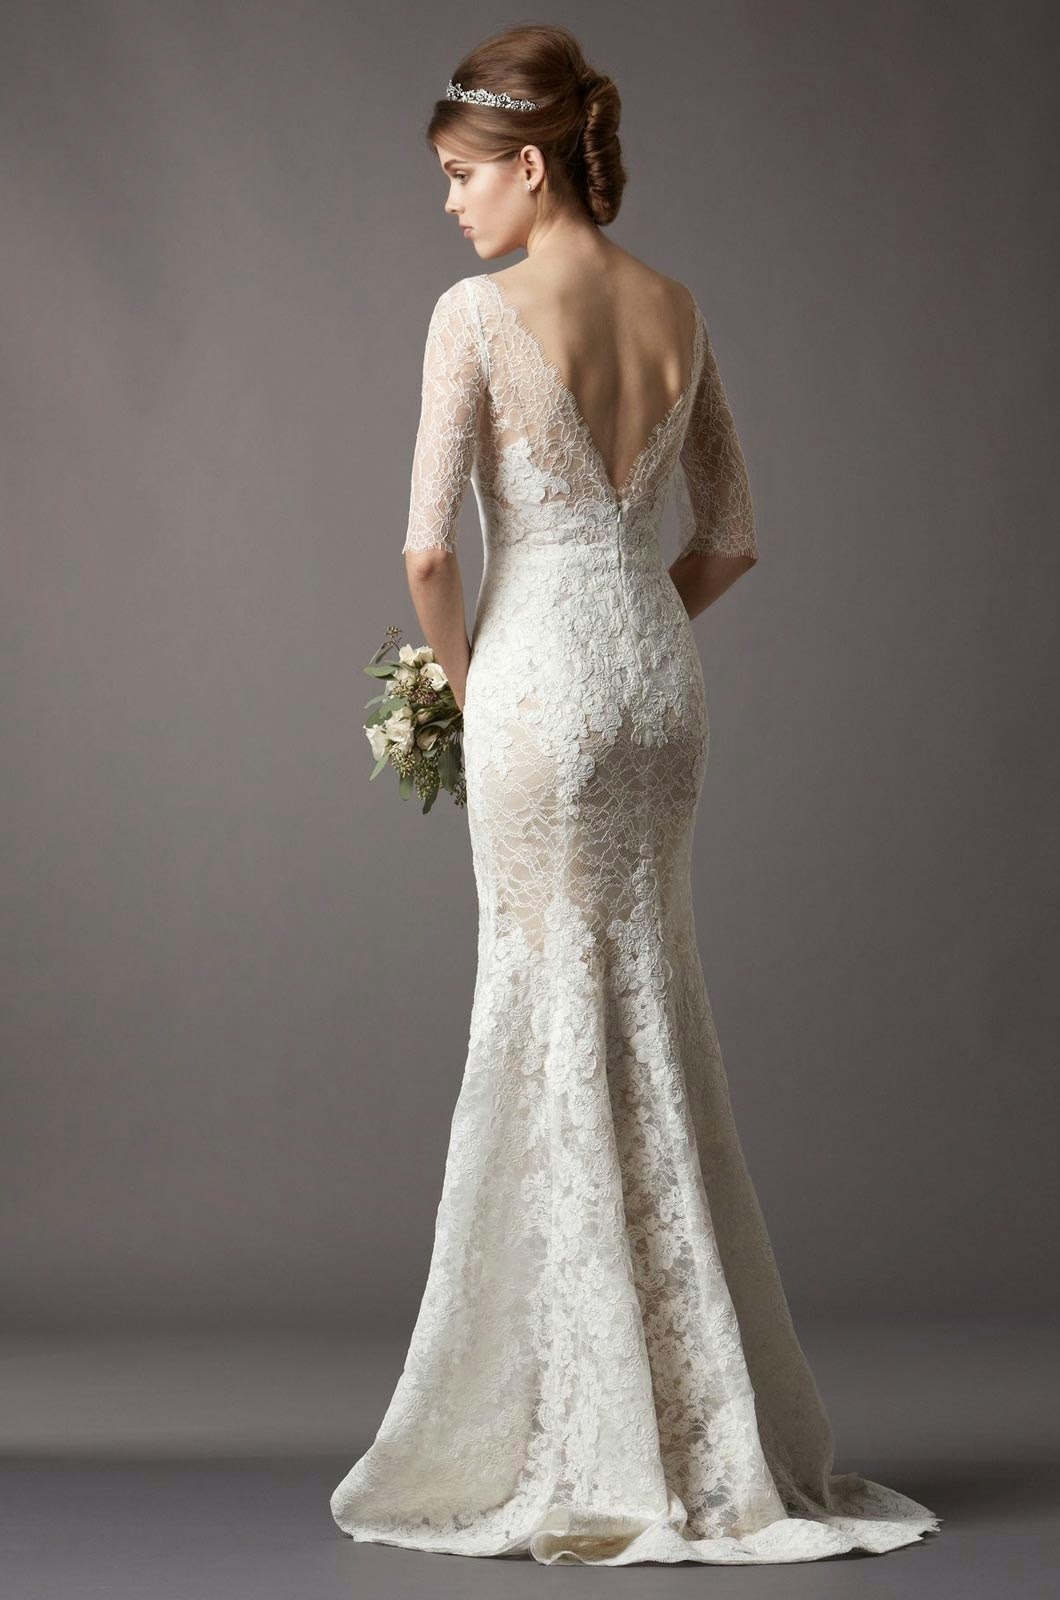 Stylish modern lace wedding dresses with long sleeves ideas for Modern long sleeve wedding dresses